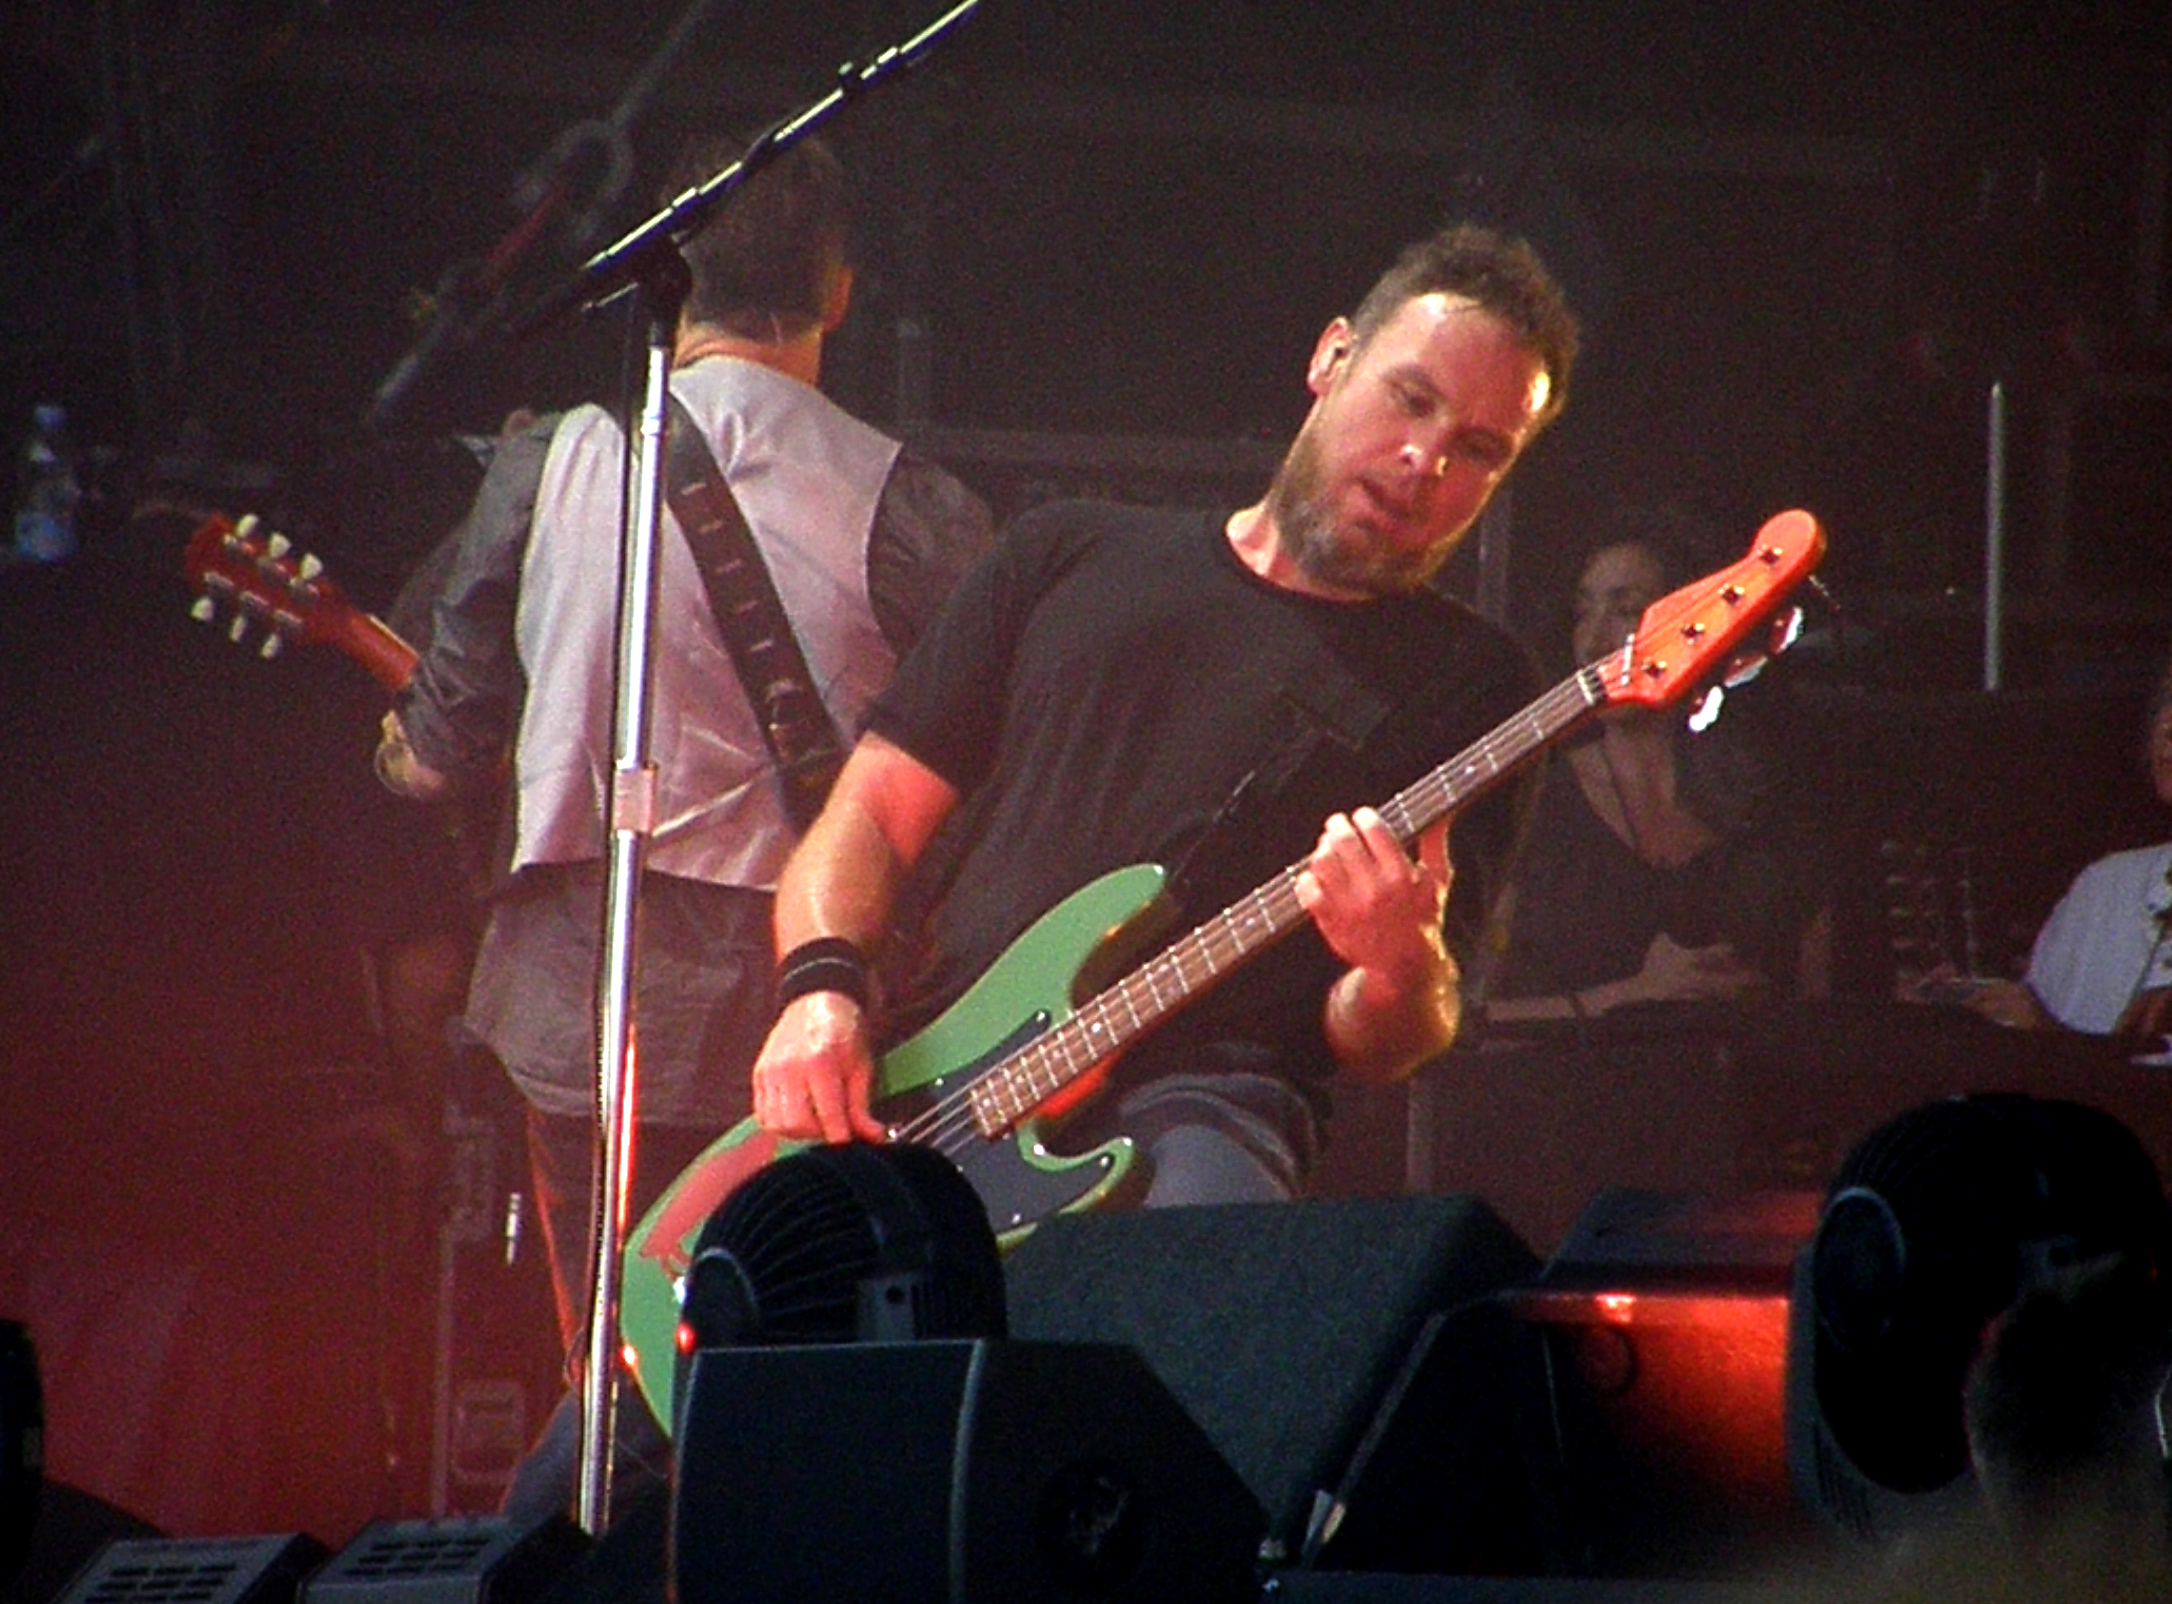 MILTON KEYNES, UNITED KINGDOM - JULY 11: Jeff Ament of Pearl Jam performs on stage at Milton Keynes Bowl on July 11, 2014 in